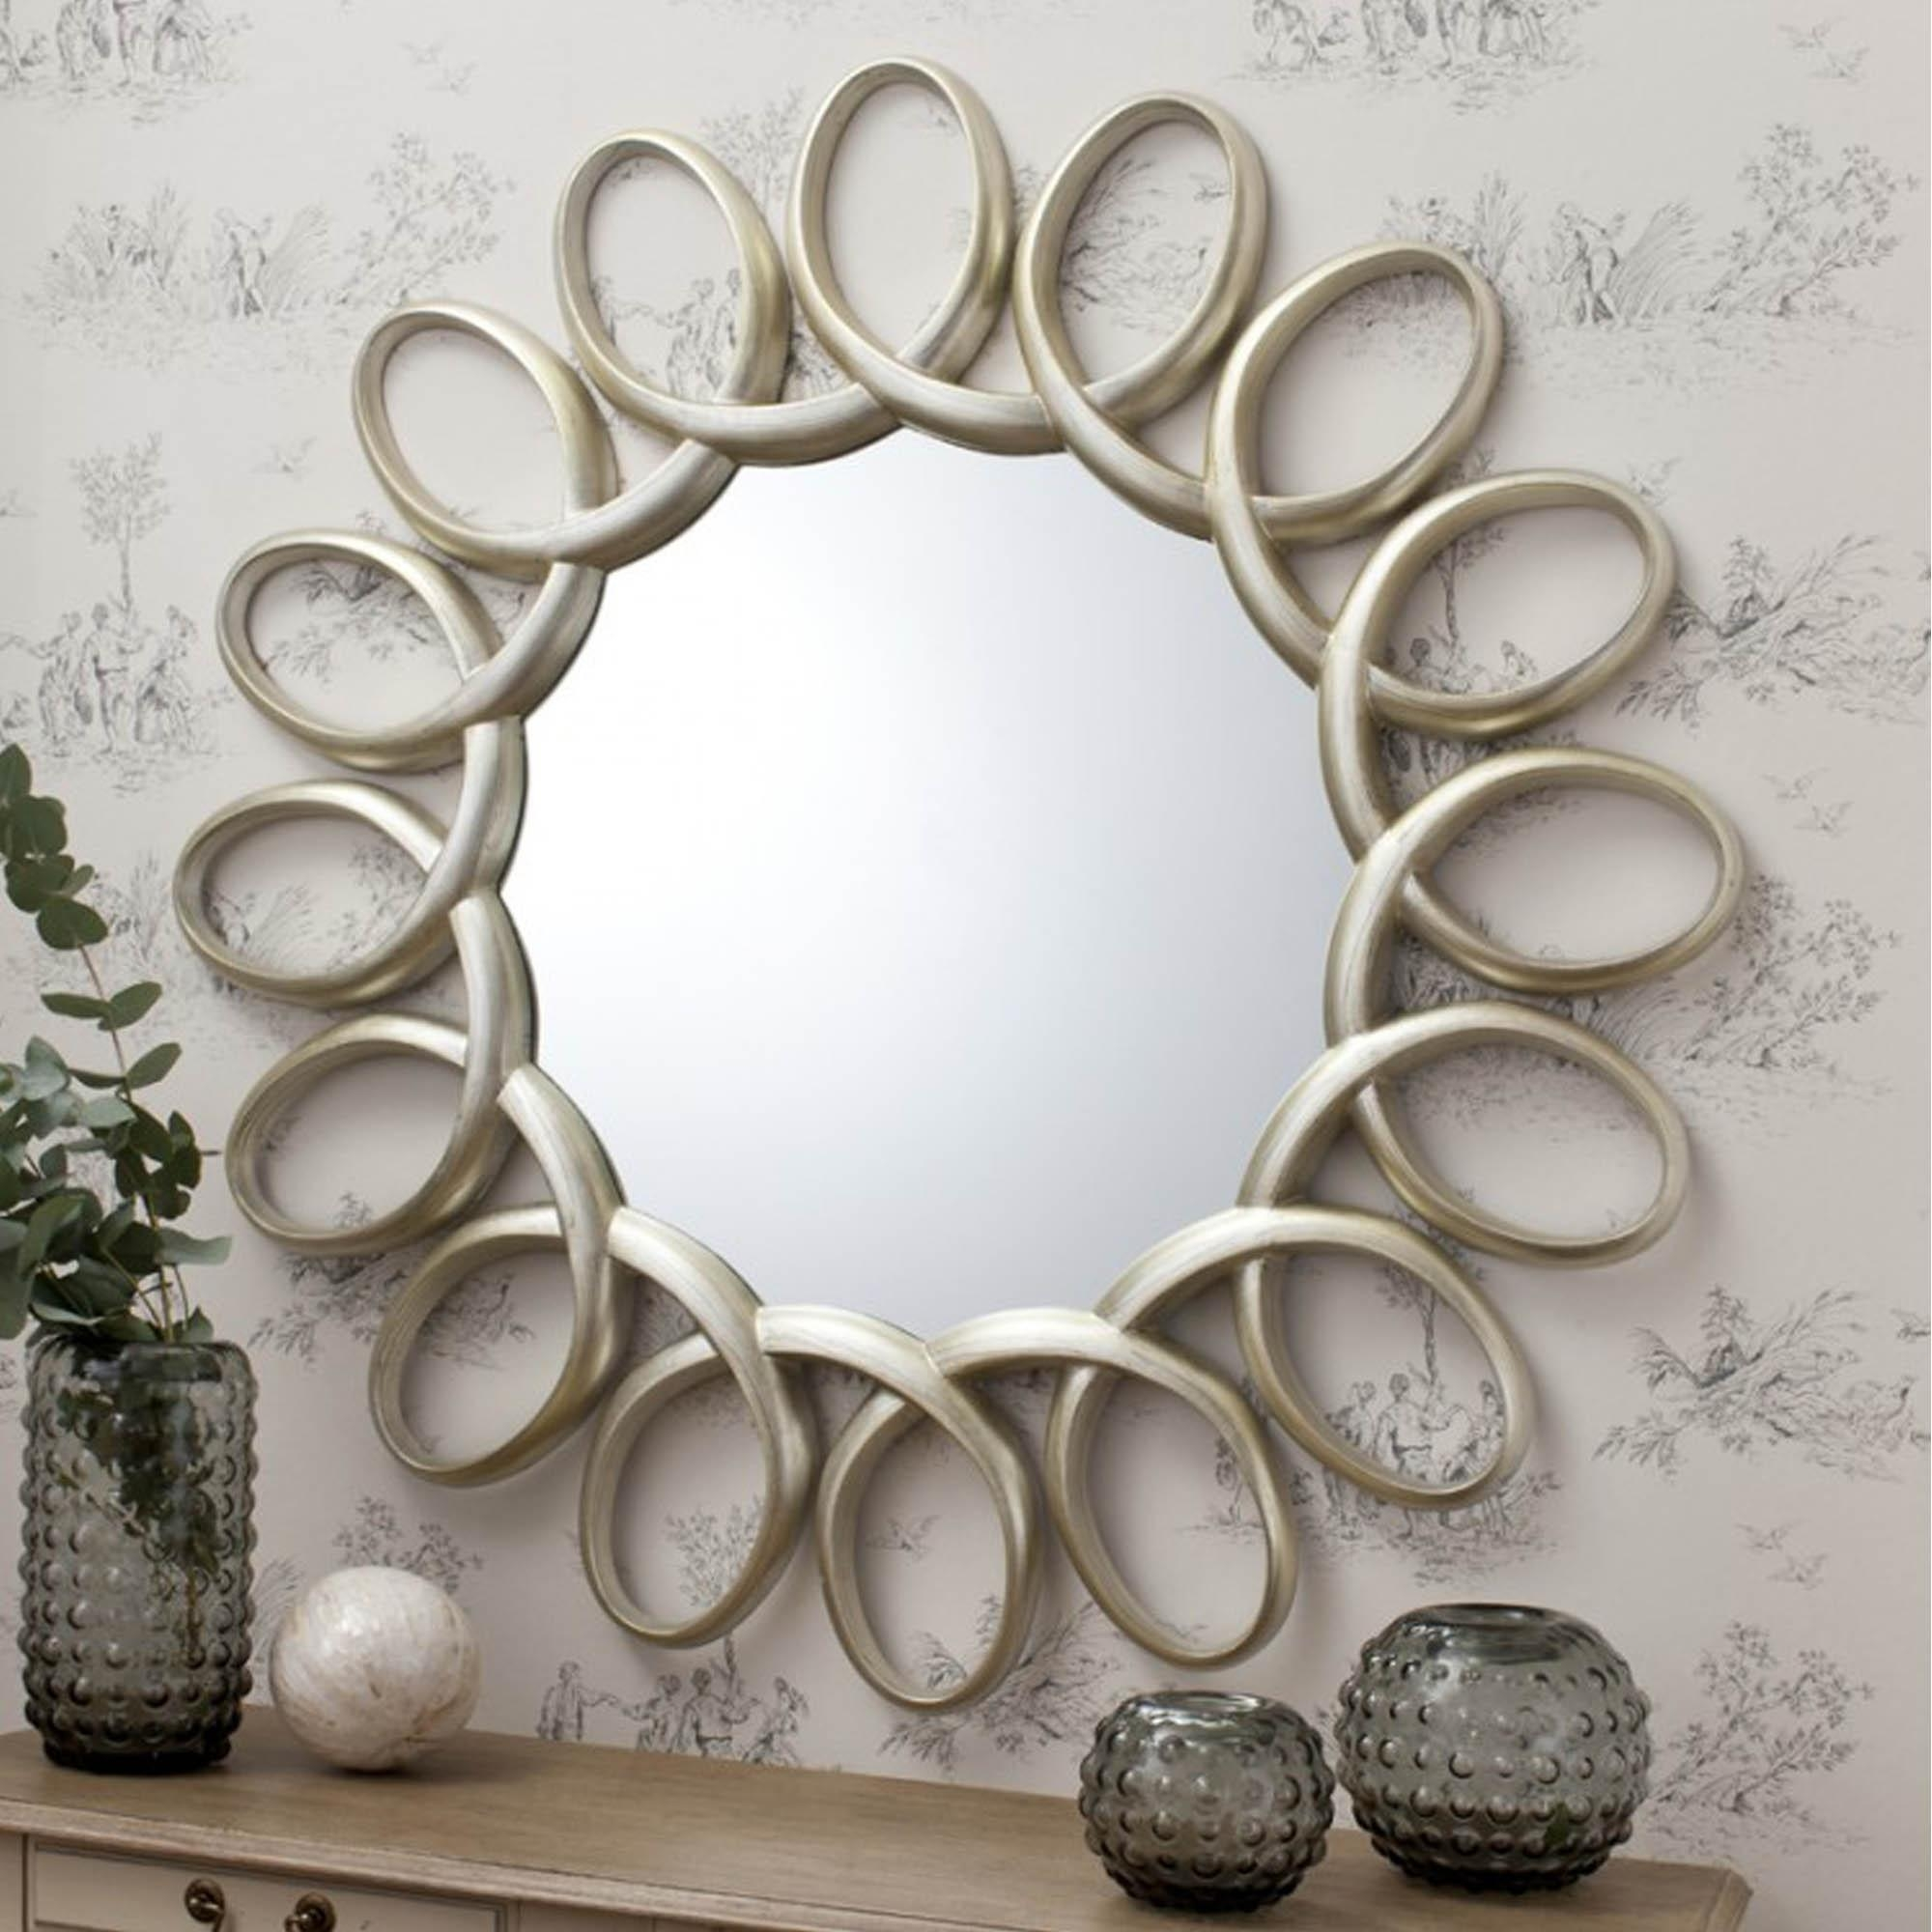 Uncategorized : Big White Wall Mirror Large Elegant Wall Mirrors Intended For Round White Mirror (Image 18 of 20)